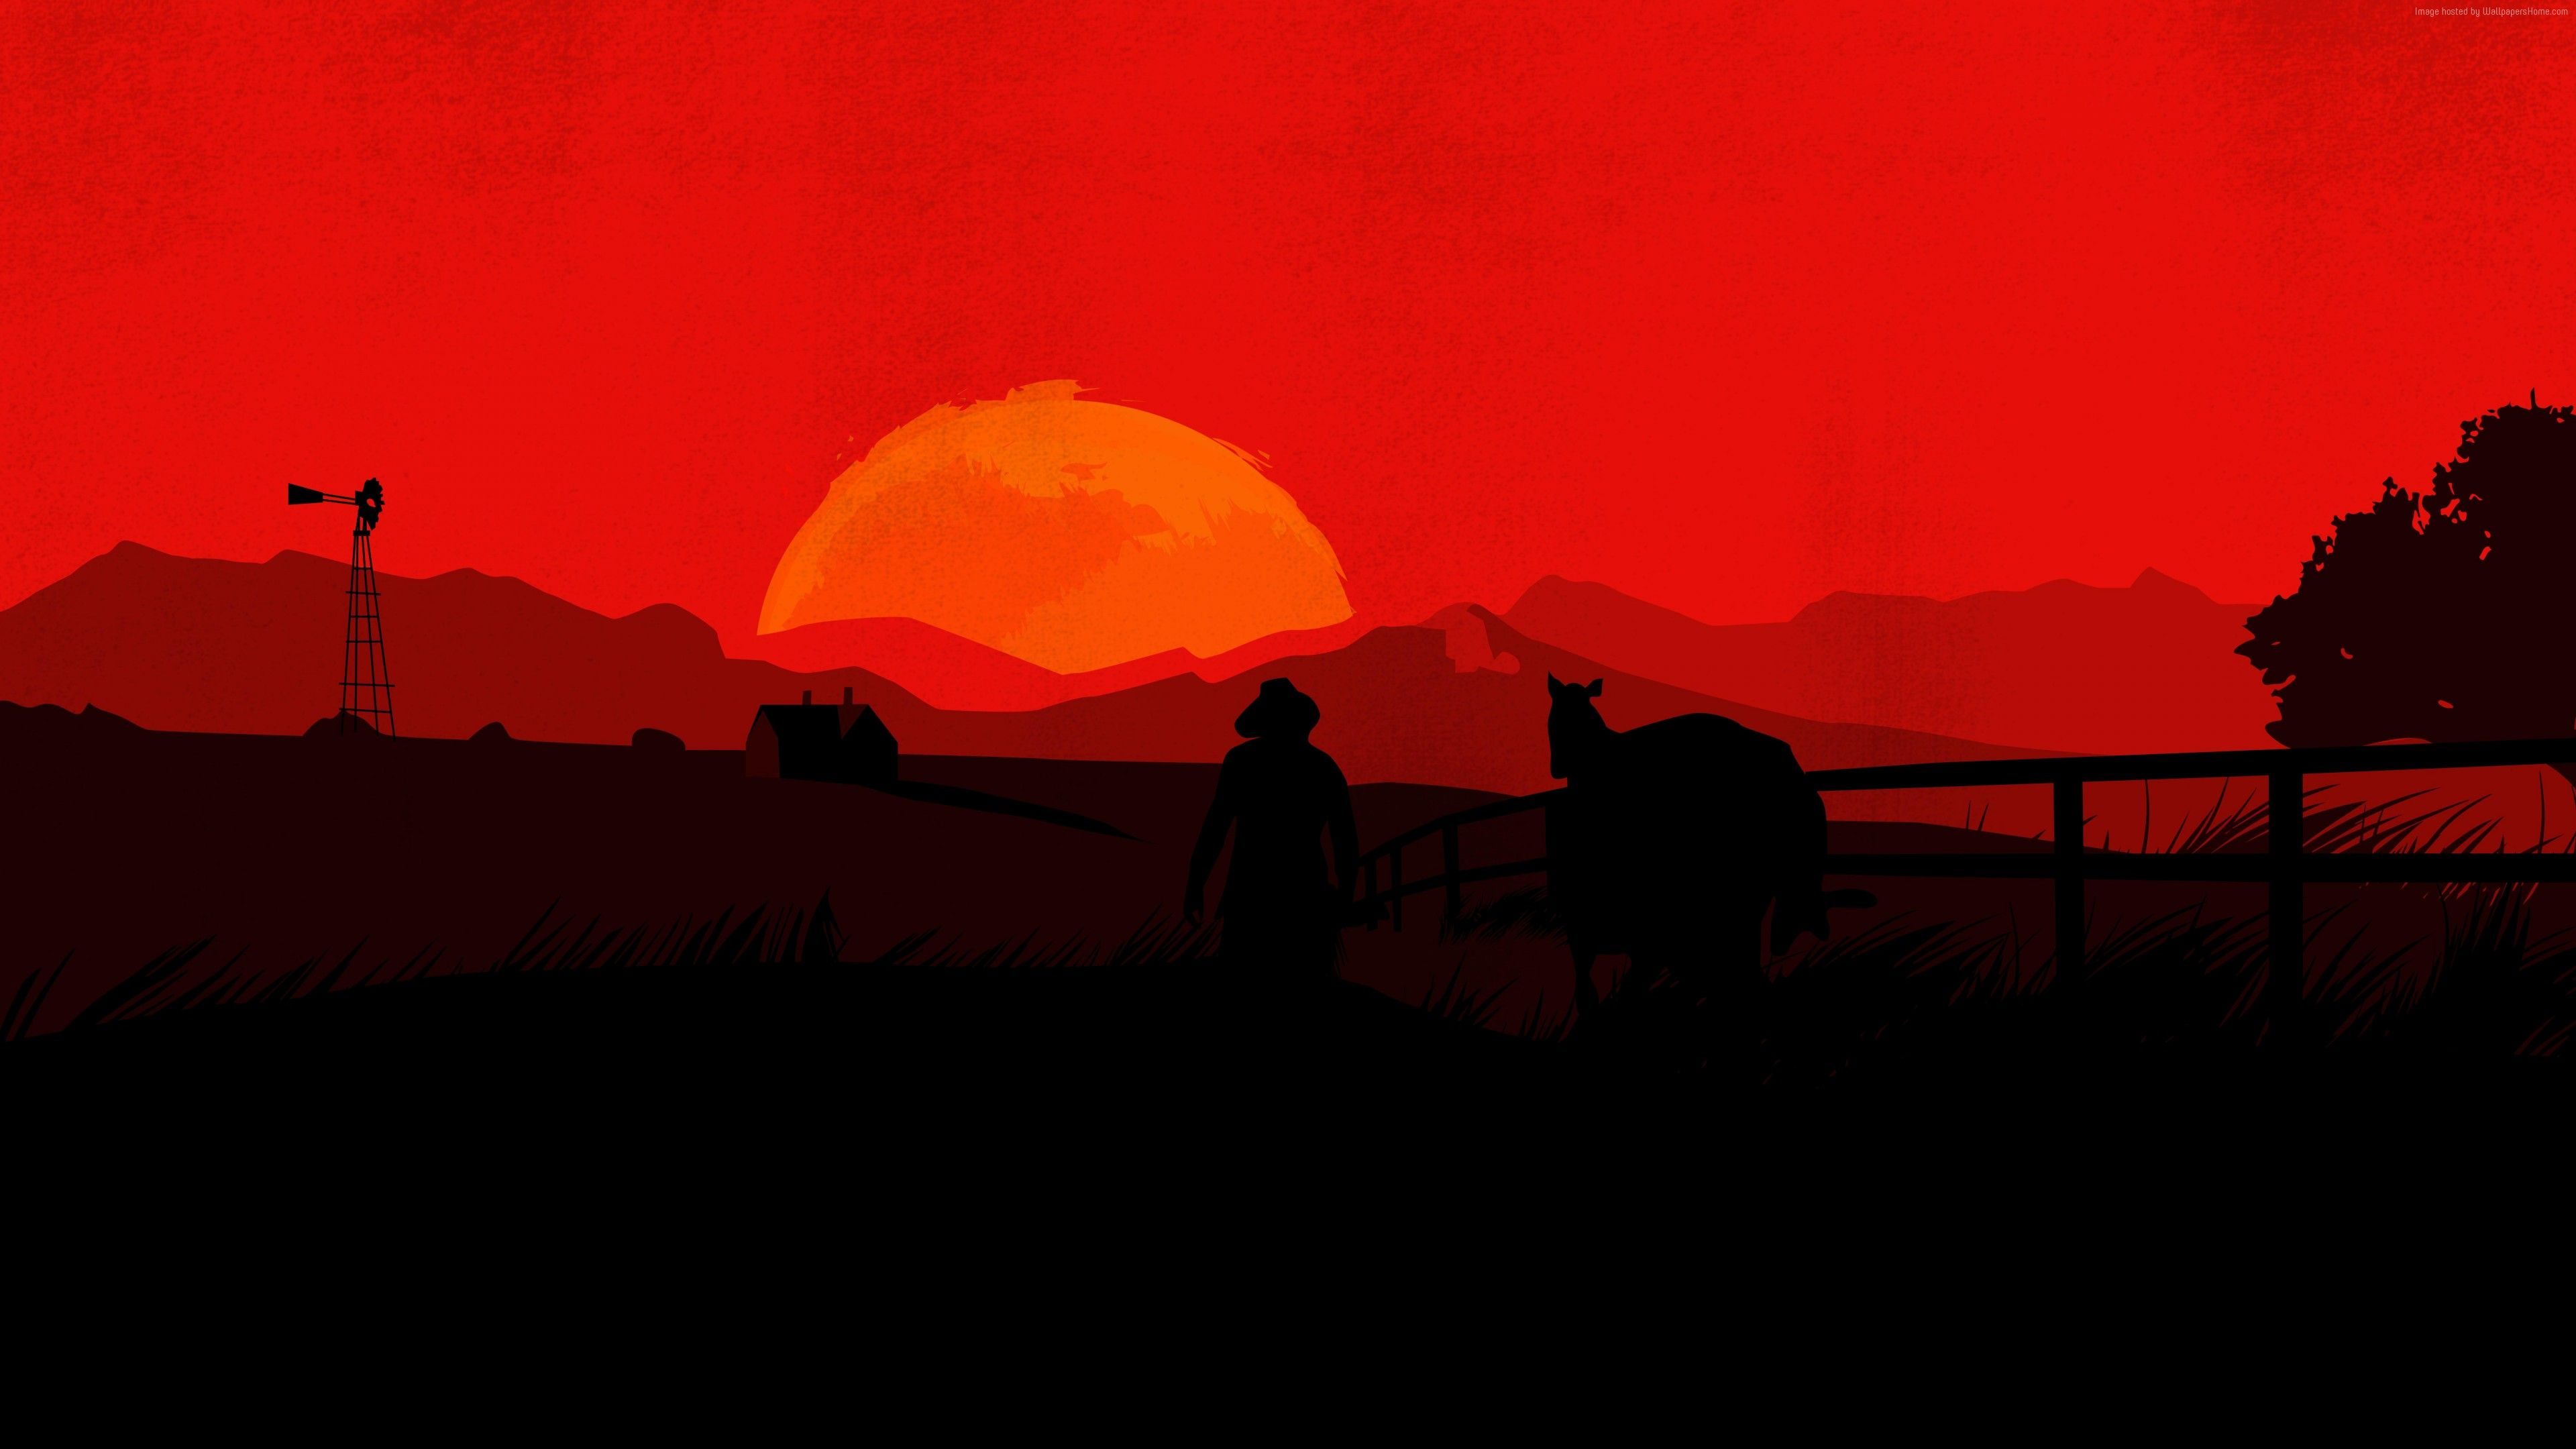 Red Dead Redemption 2 https://livewallpaperswide.com/games ...